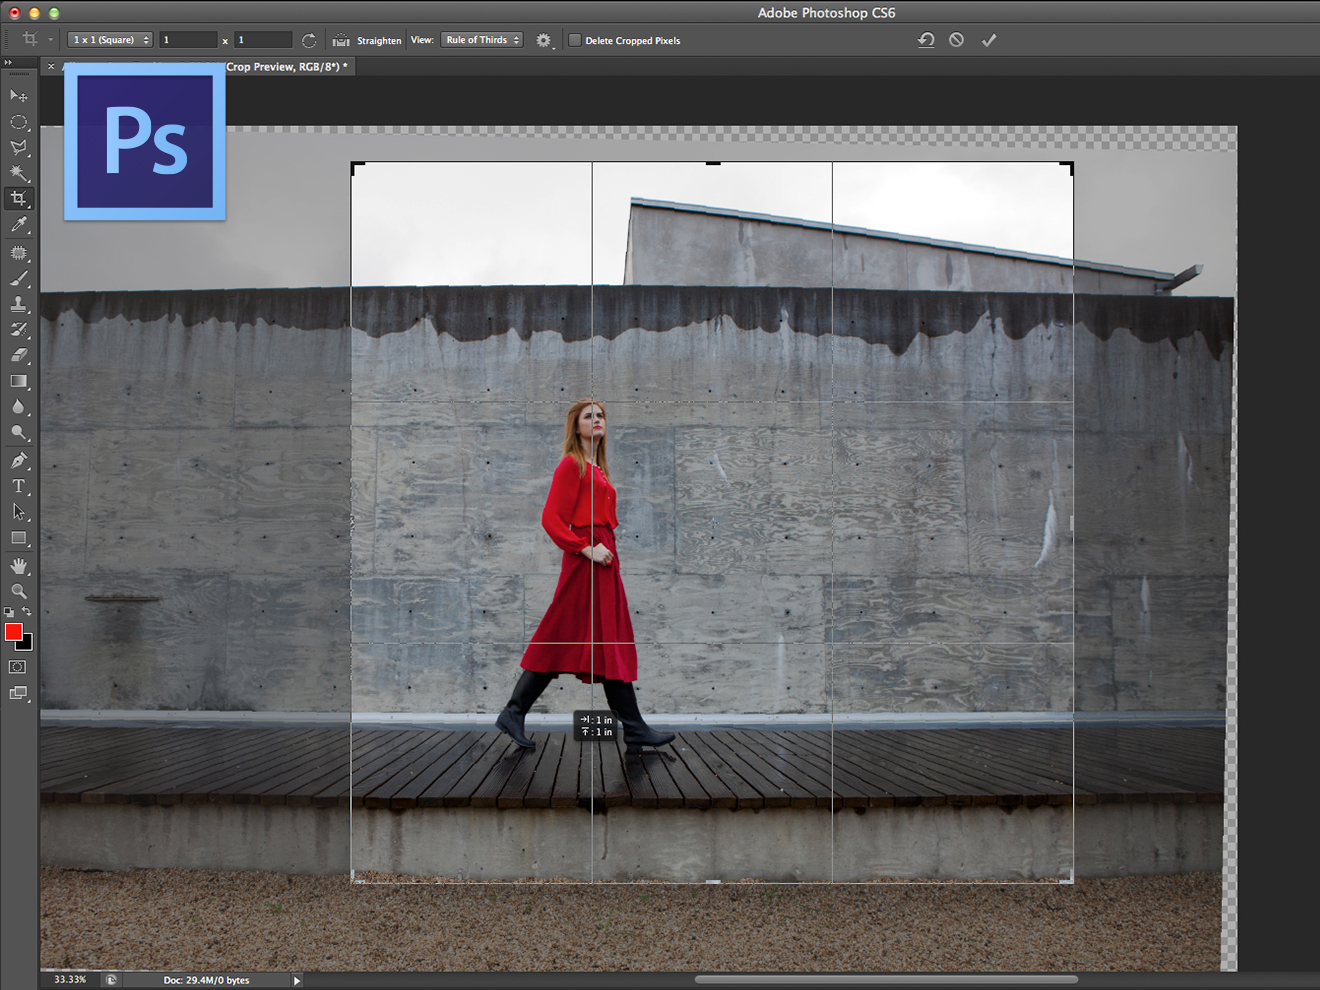 Adobe Photoshop CS6 2020 Crack With License Key Full Free Download